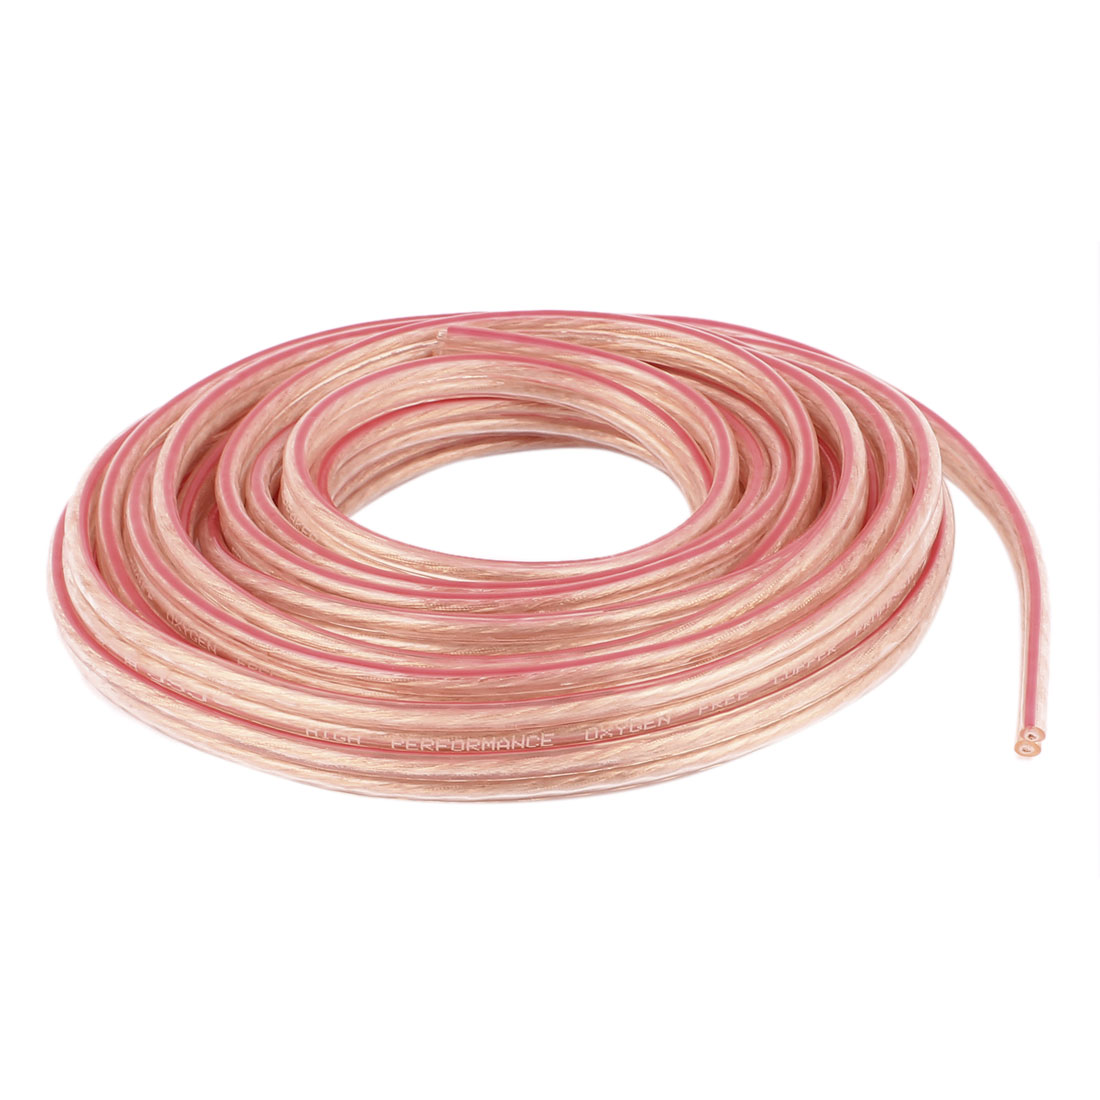 5 Meter 16 Ft Speaker 200 Copper Wire Core Cable Cord Coil Car Home Audio Gold Tone